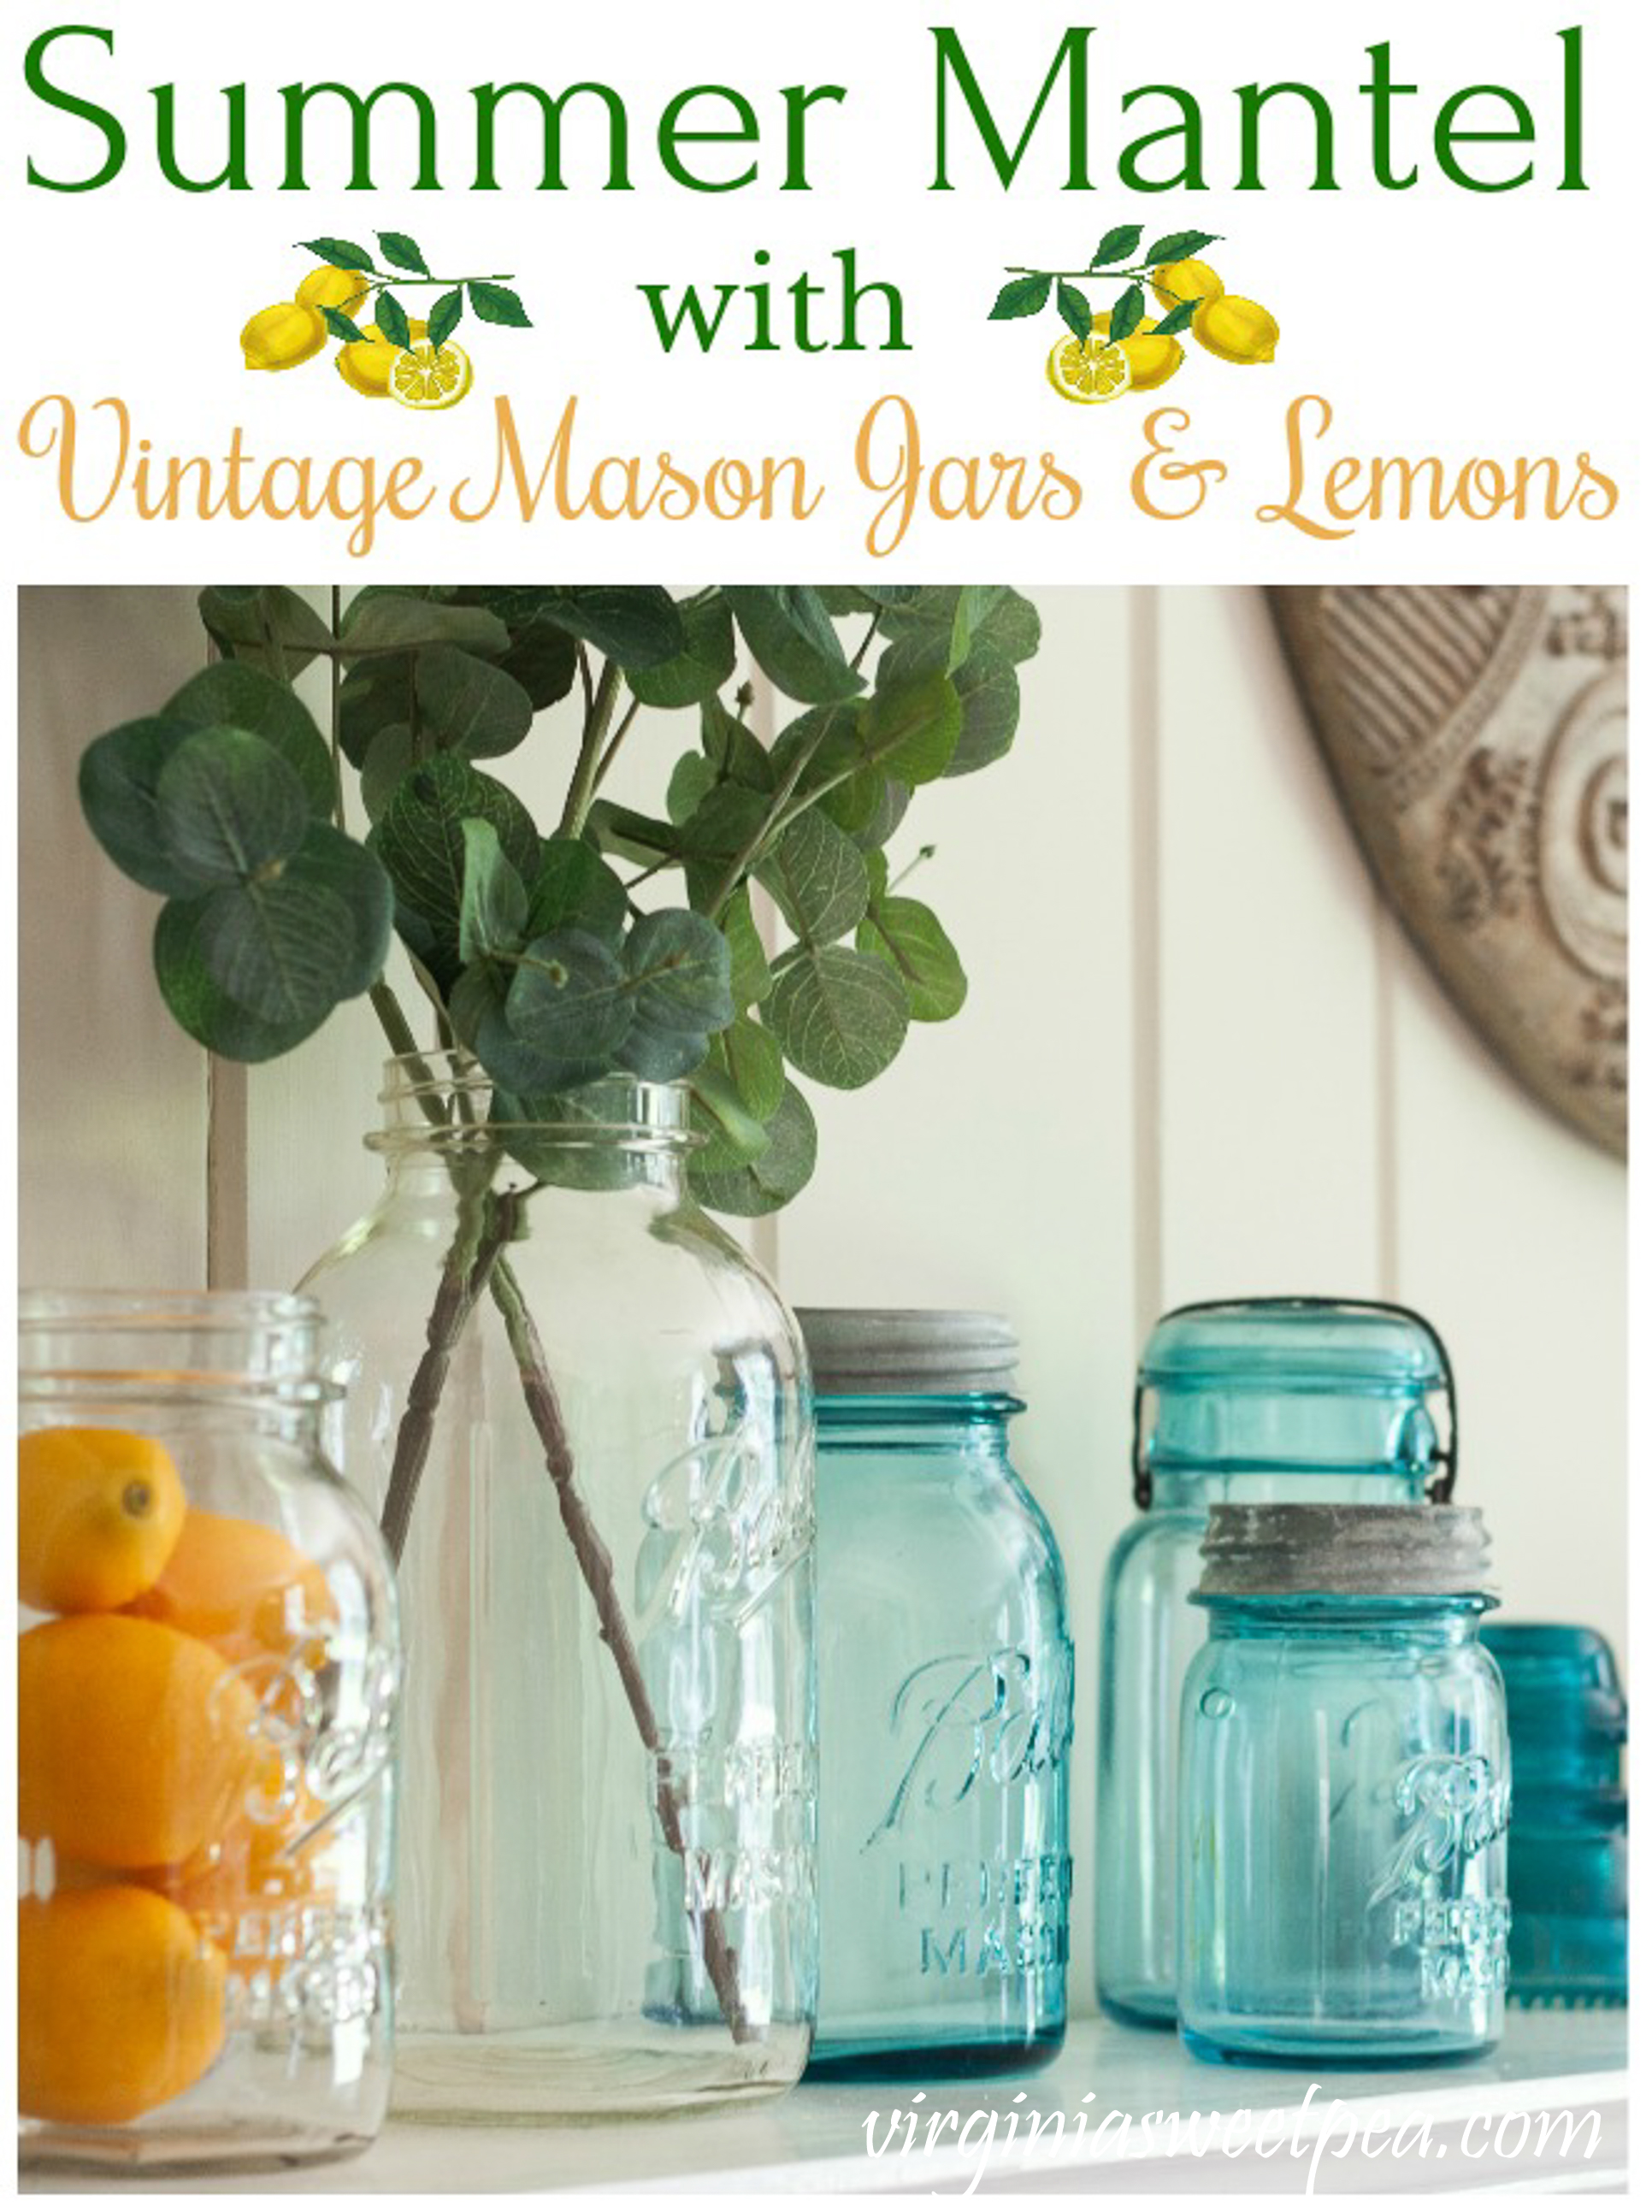 How to decorate a summer mantel with Mason jars and lemons